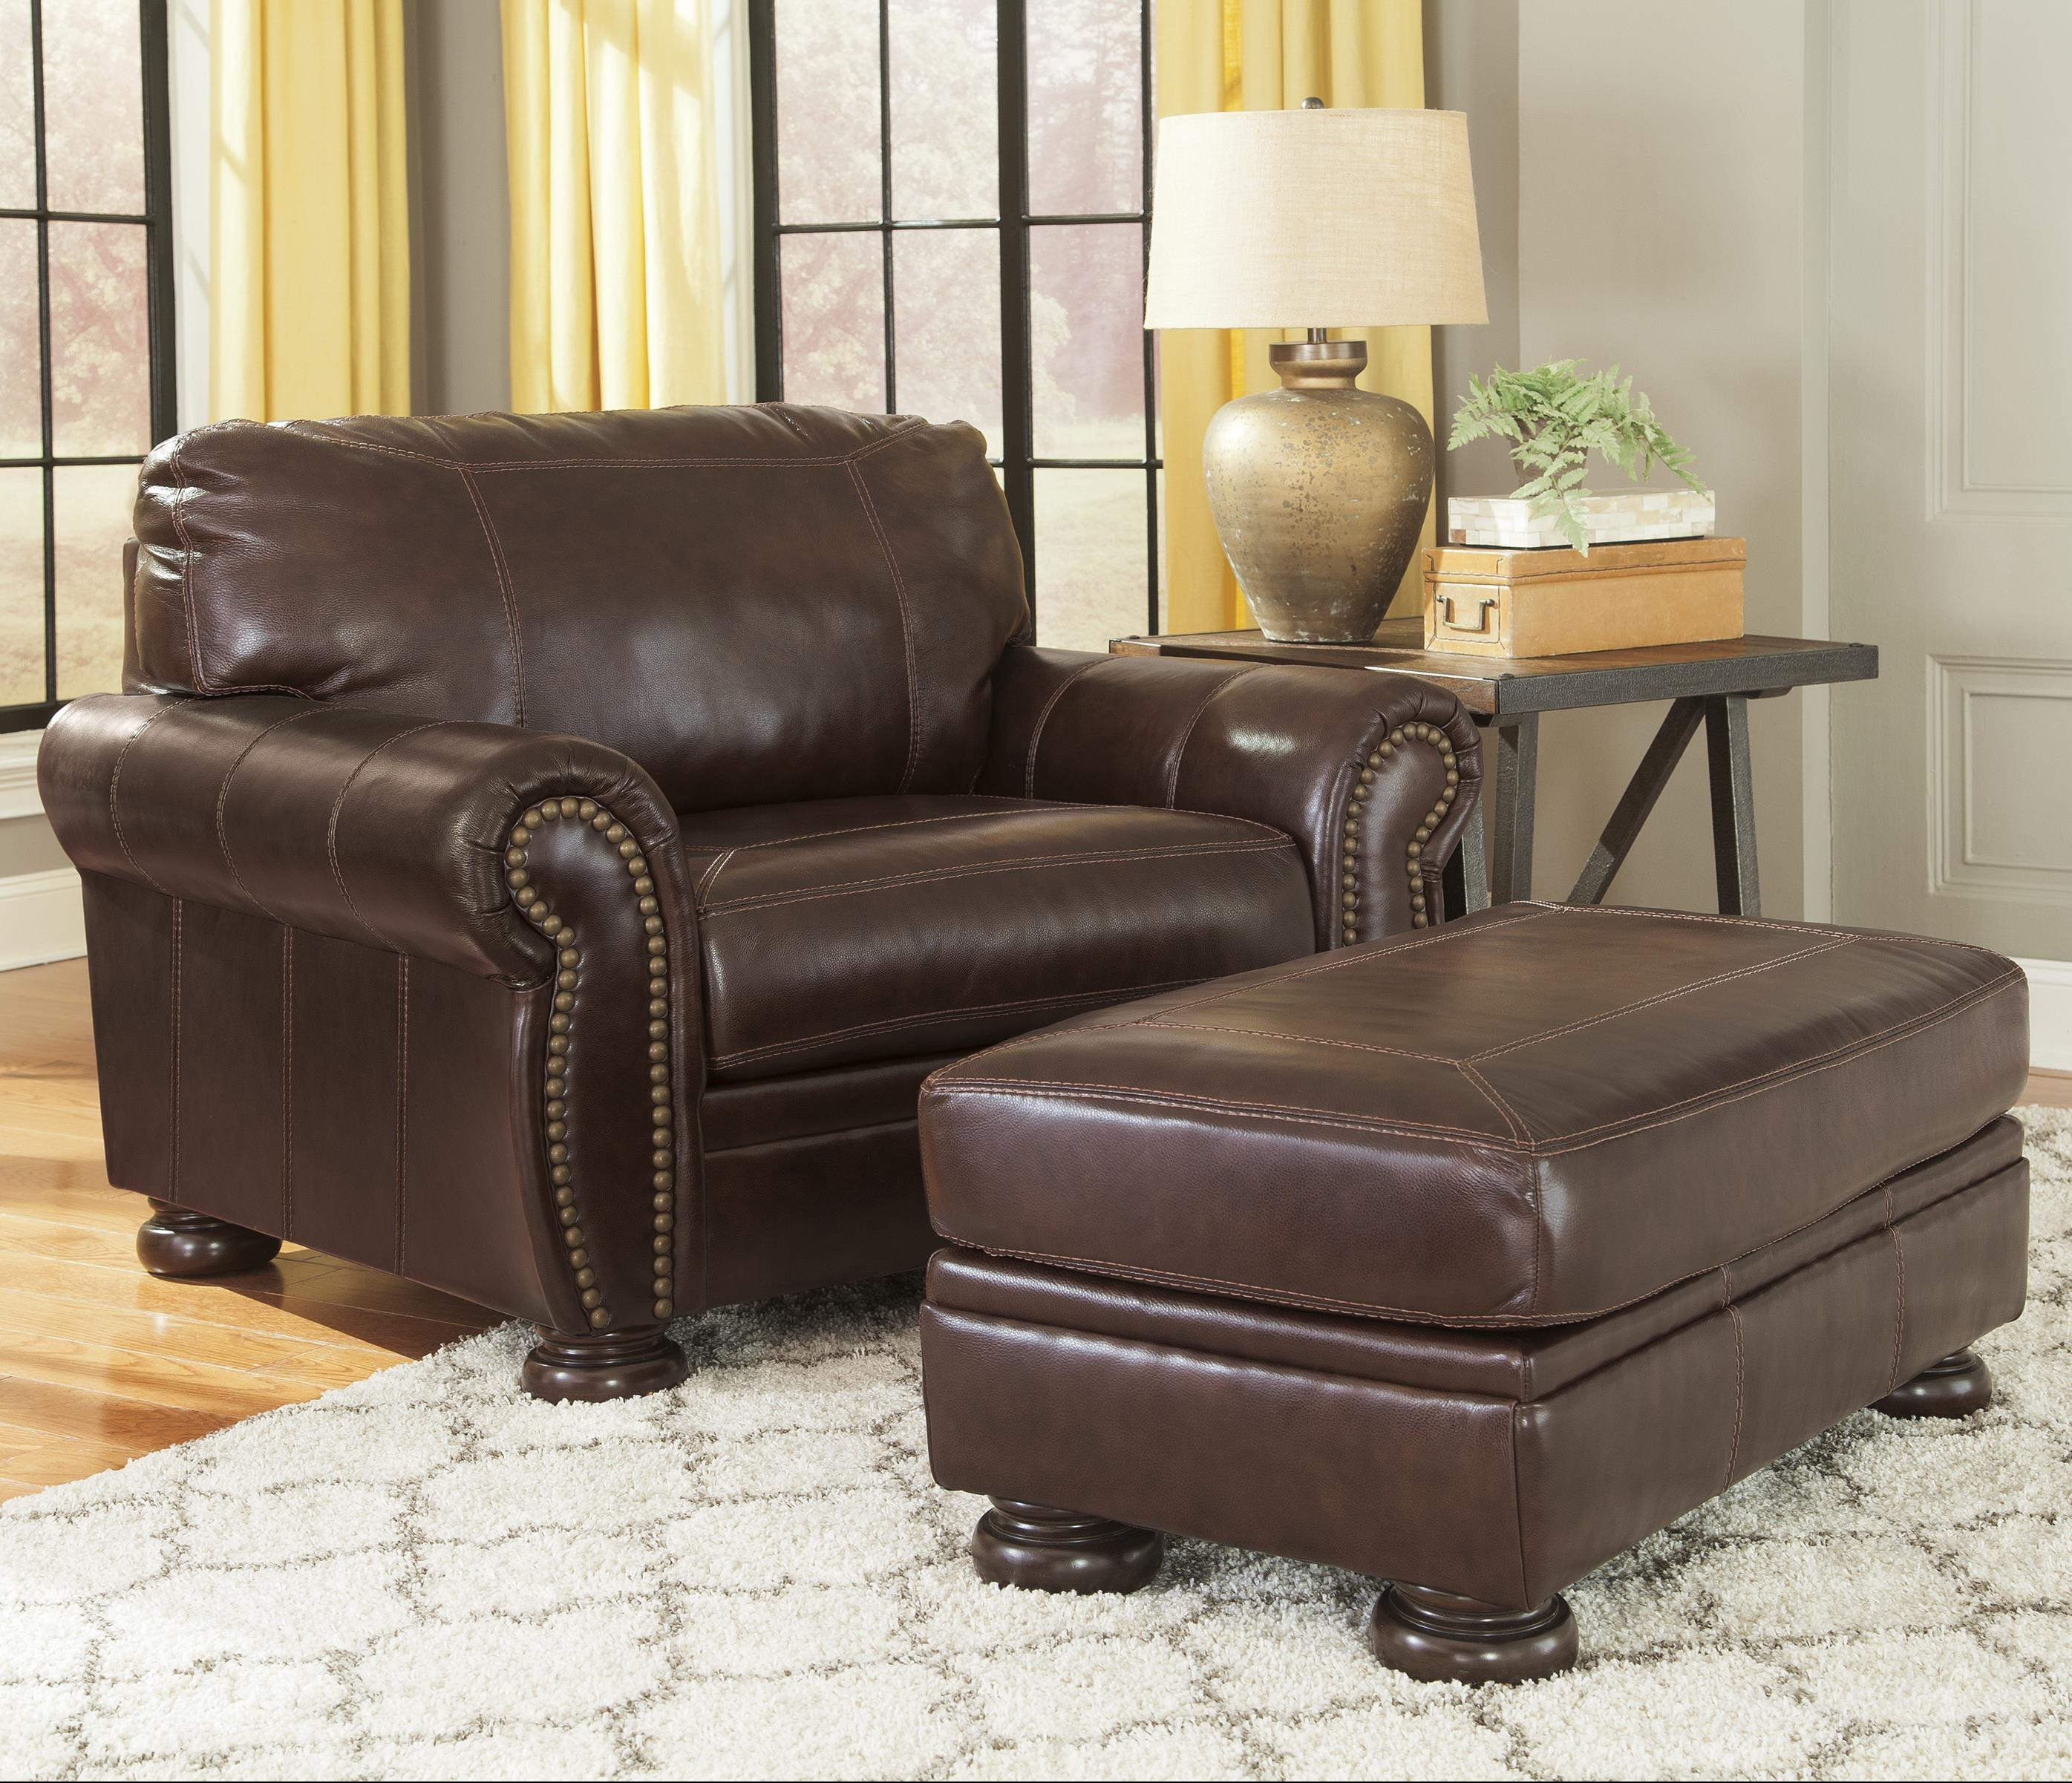 Banner Chair and a Half & Ottoman by Signature Design by Ashley at Lapeer Furniture & Mattress Center